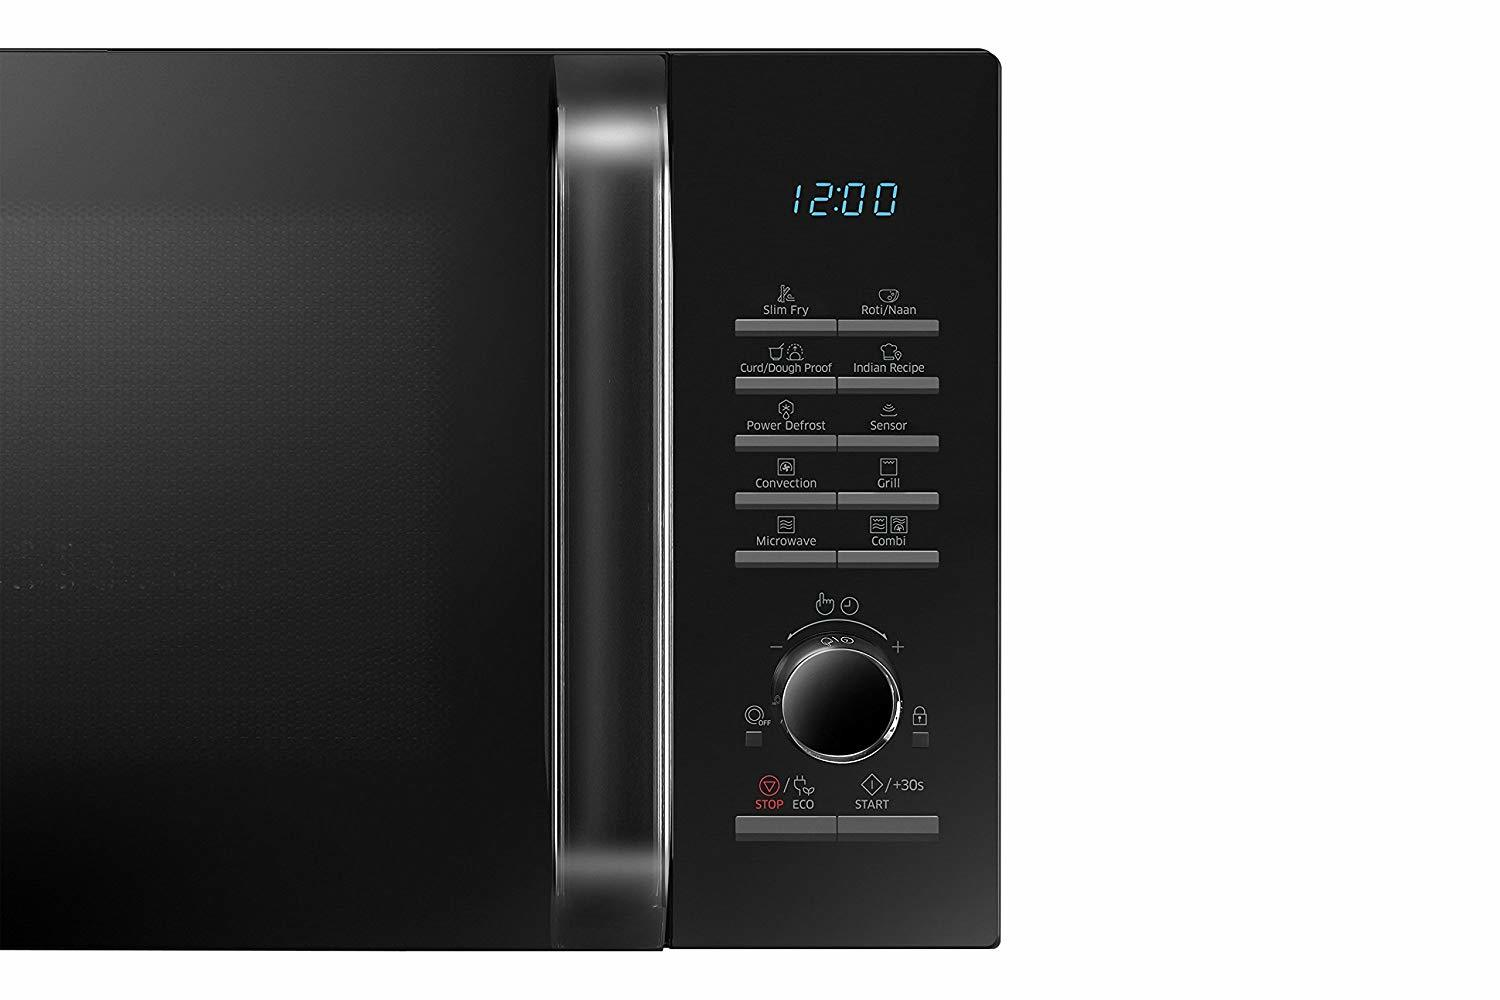 Samsung 28 L Convection Microwave Oven (MC28H5145VK/TL, Black)